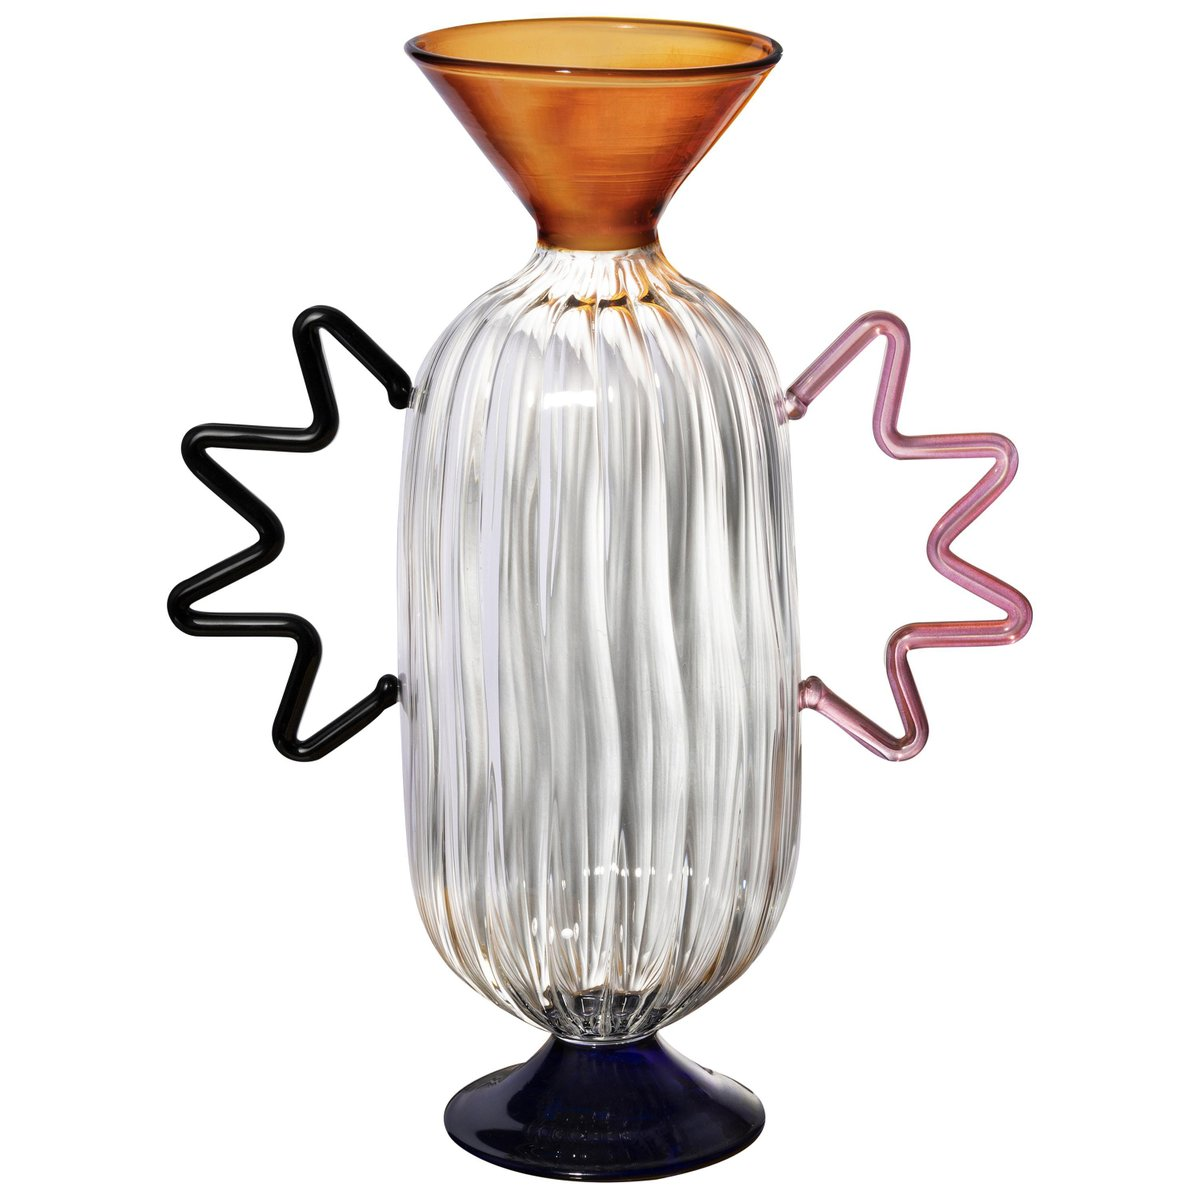 Arabesque Glass Vase By Serena Confalonieri For Sale At Pamono